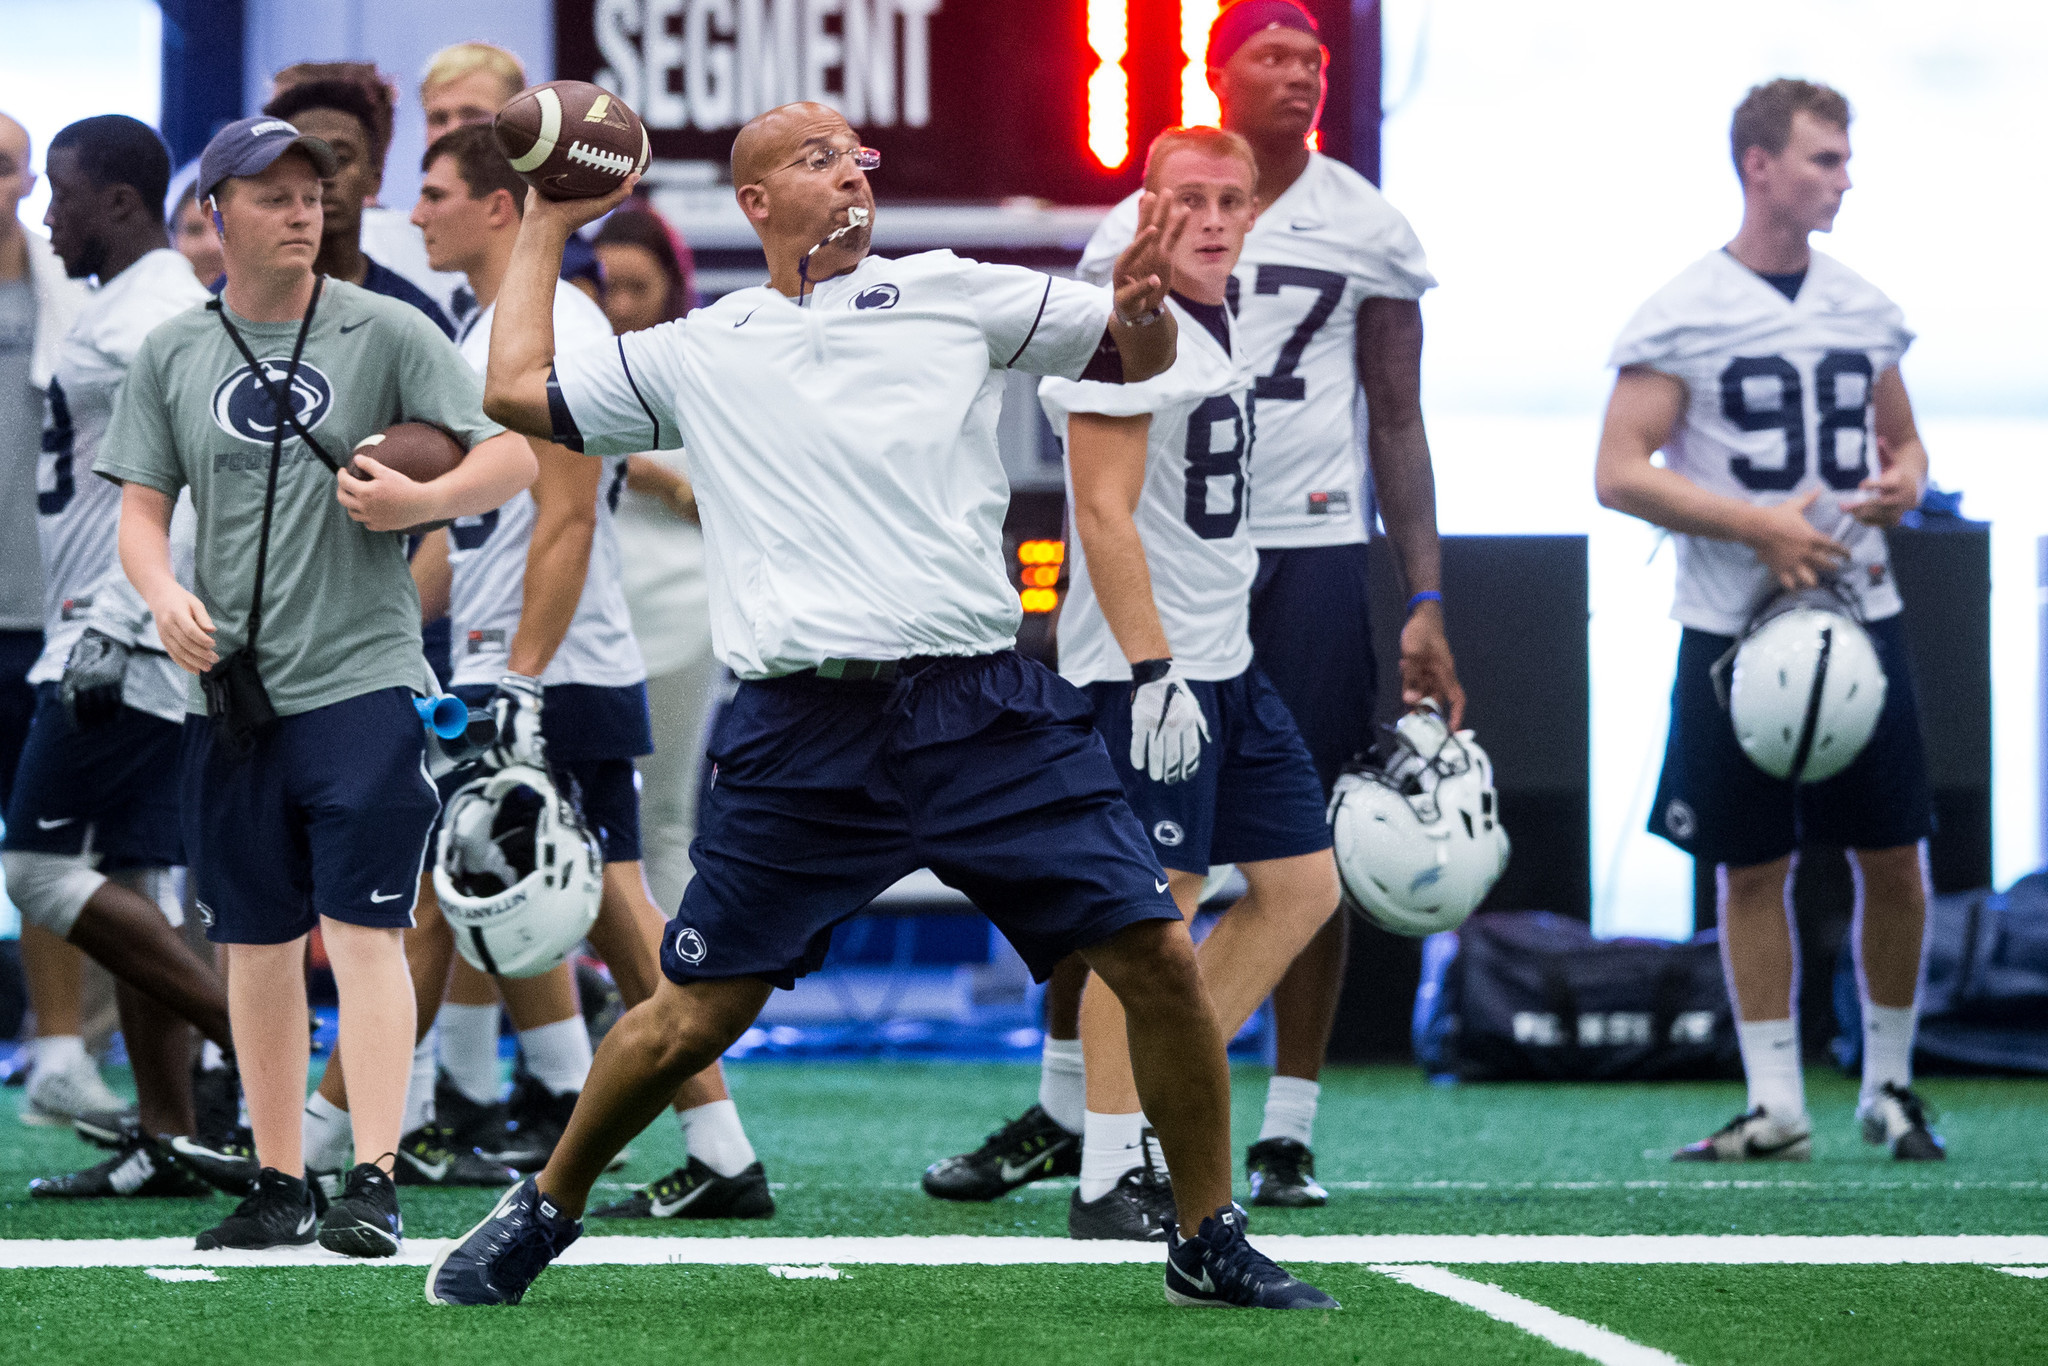 Mc-penn-state-sharpens-depth-chart-as-season-opener-approaches-20160825